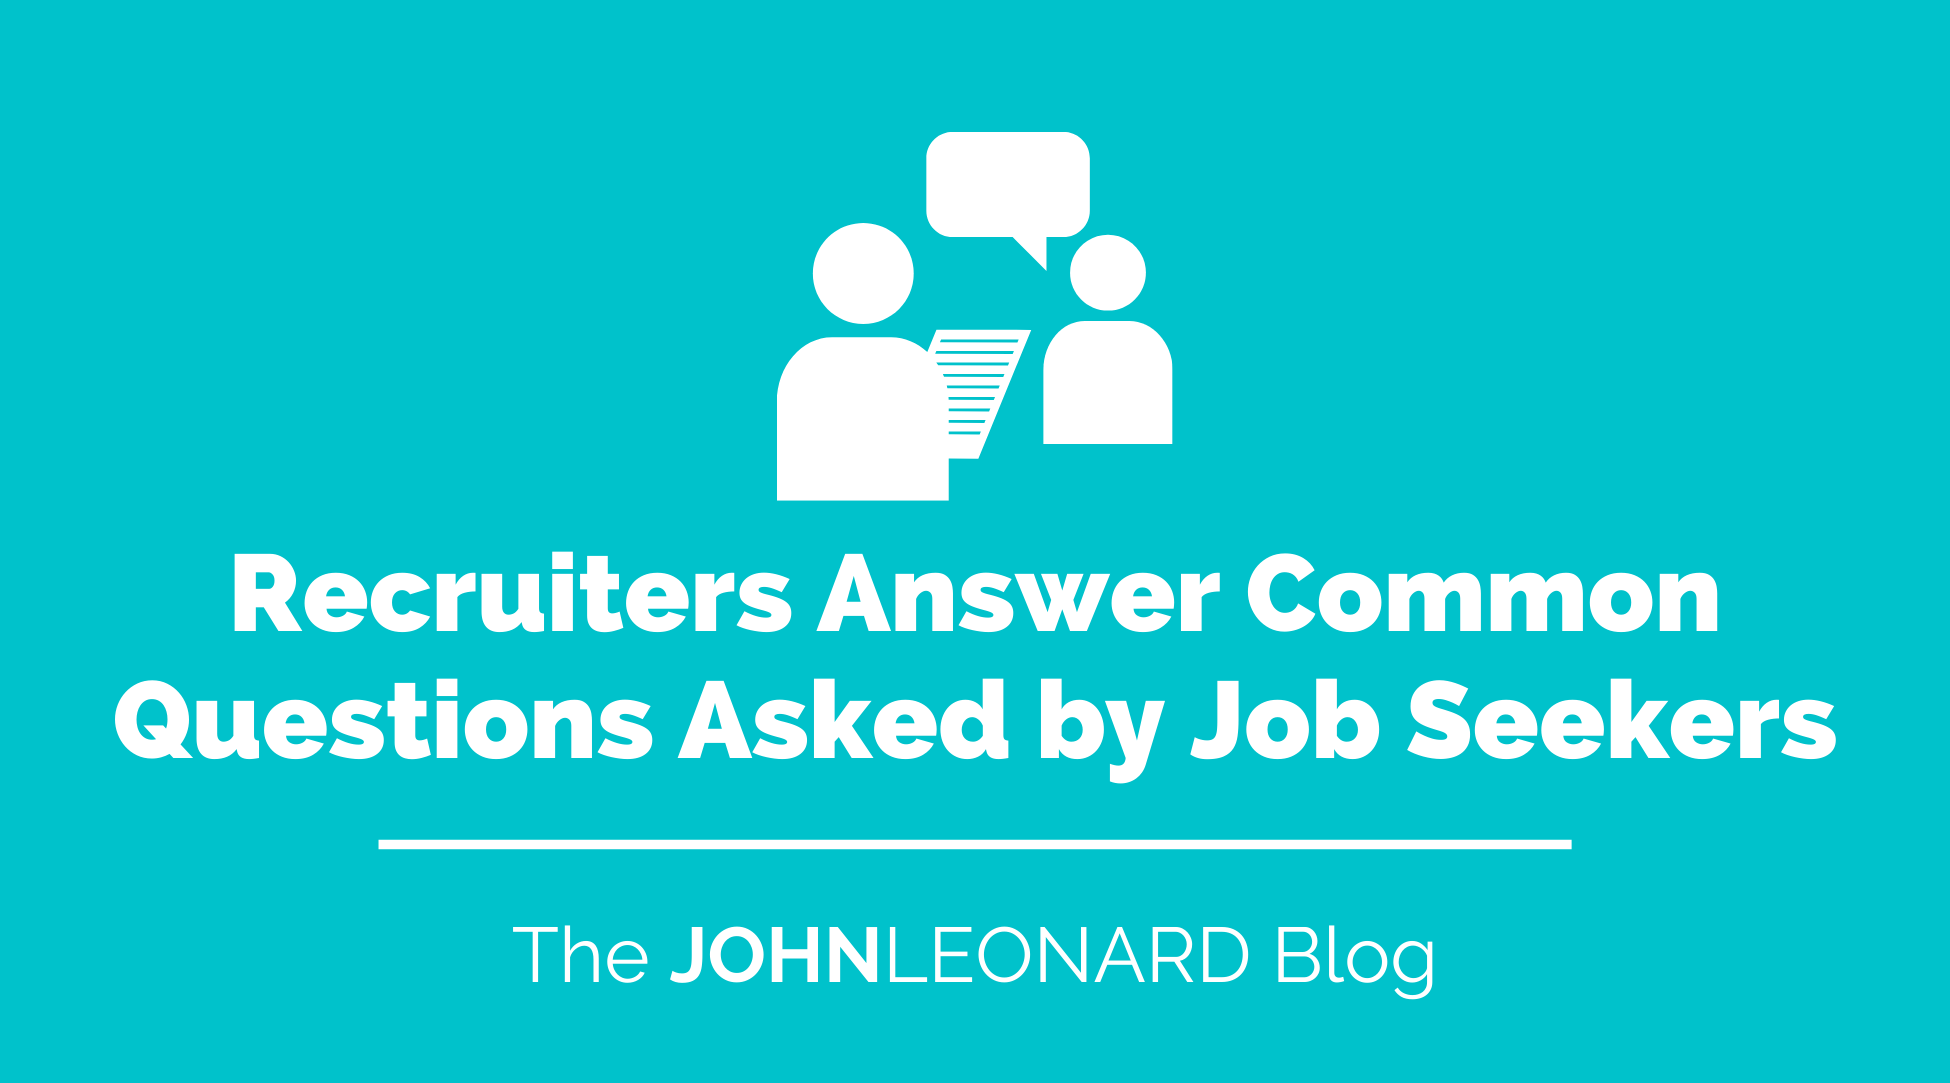 Recruiters Answer Common Questions Asked By Job Seekers